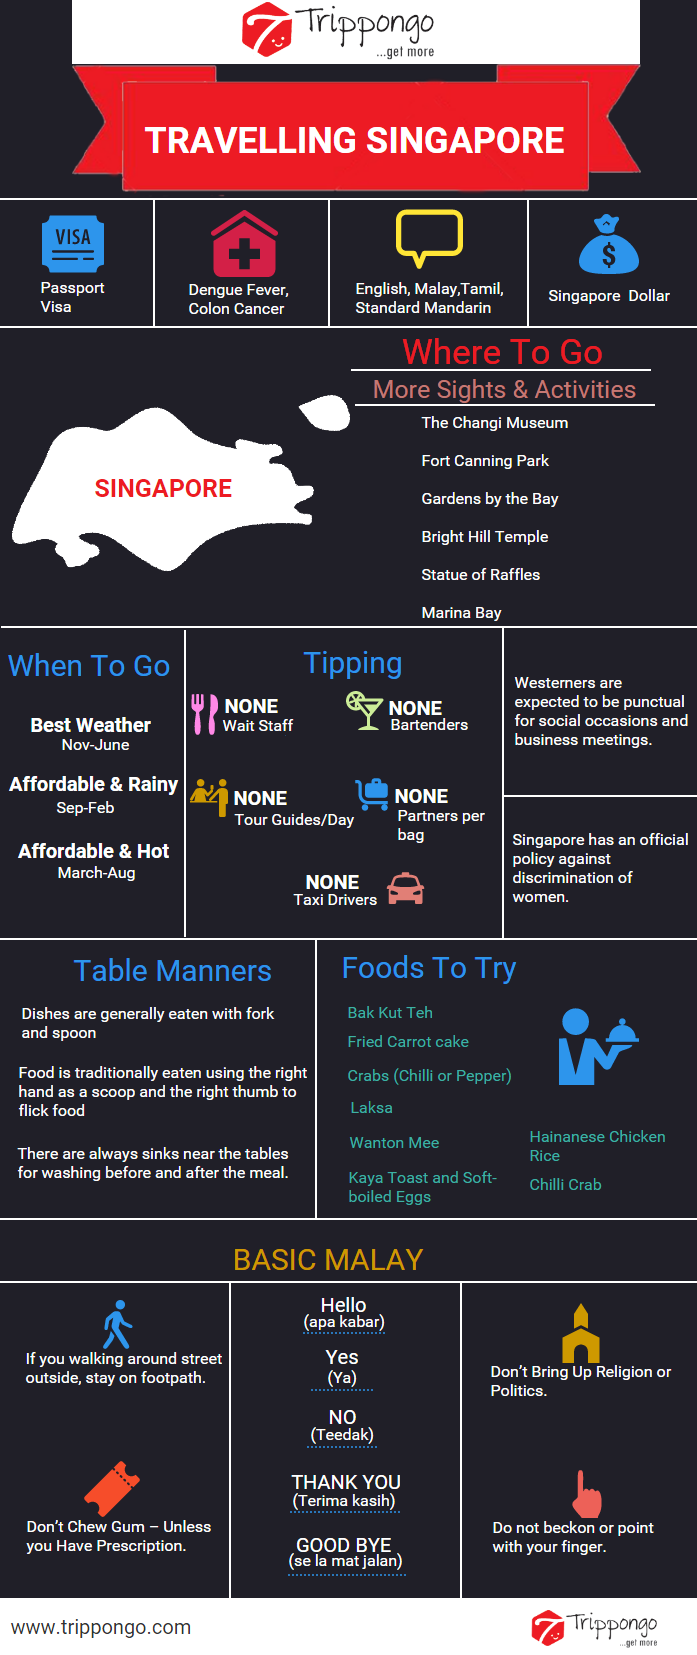 Get complete information about sightseeing and tourist destinations in Singapore travelling infographic.